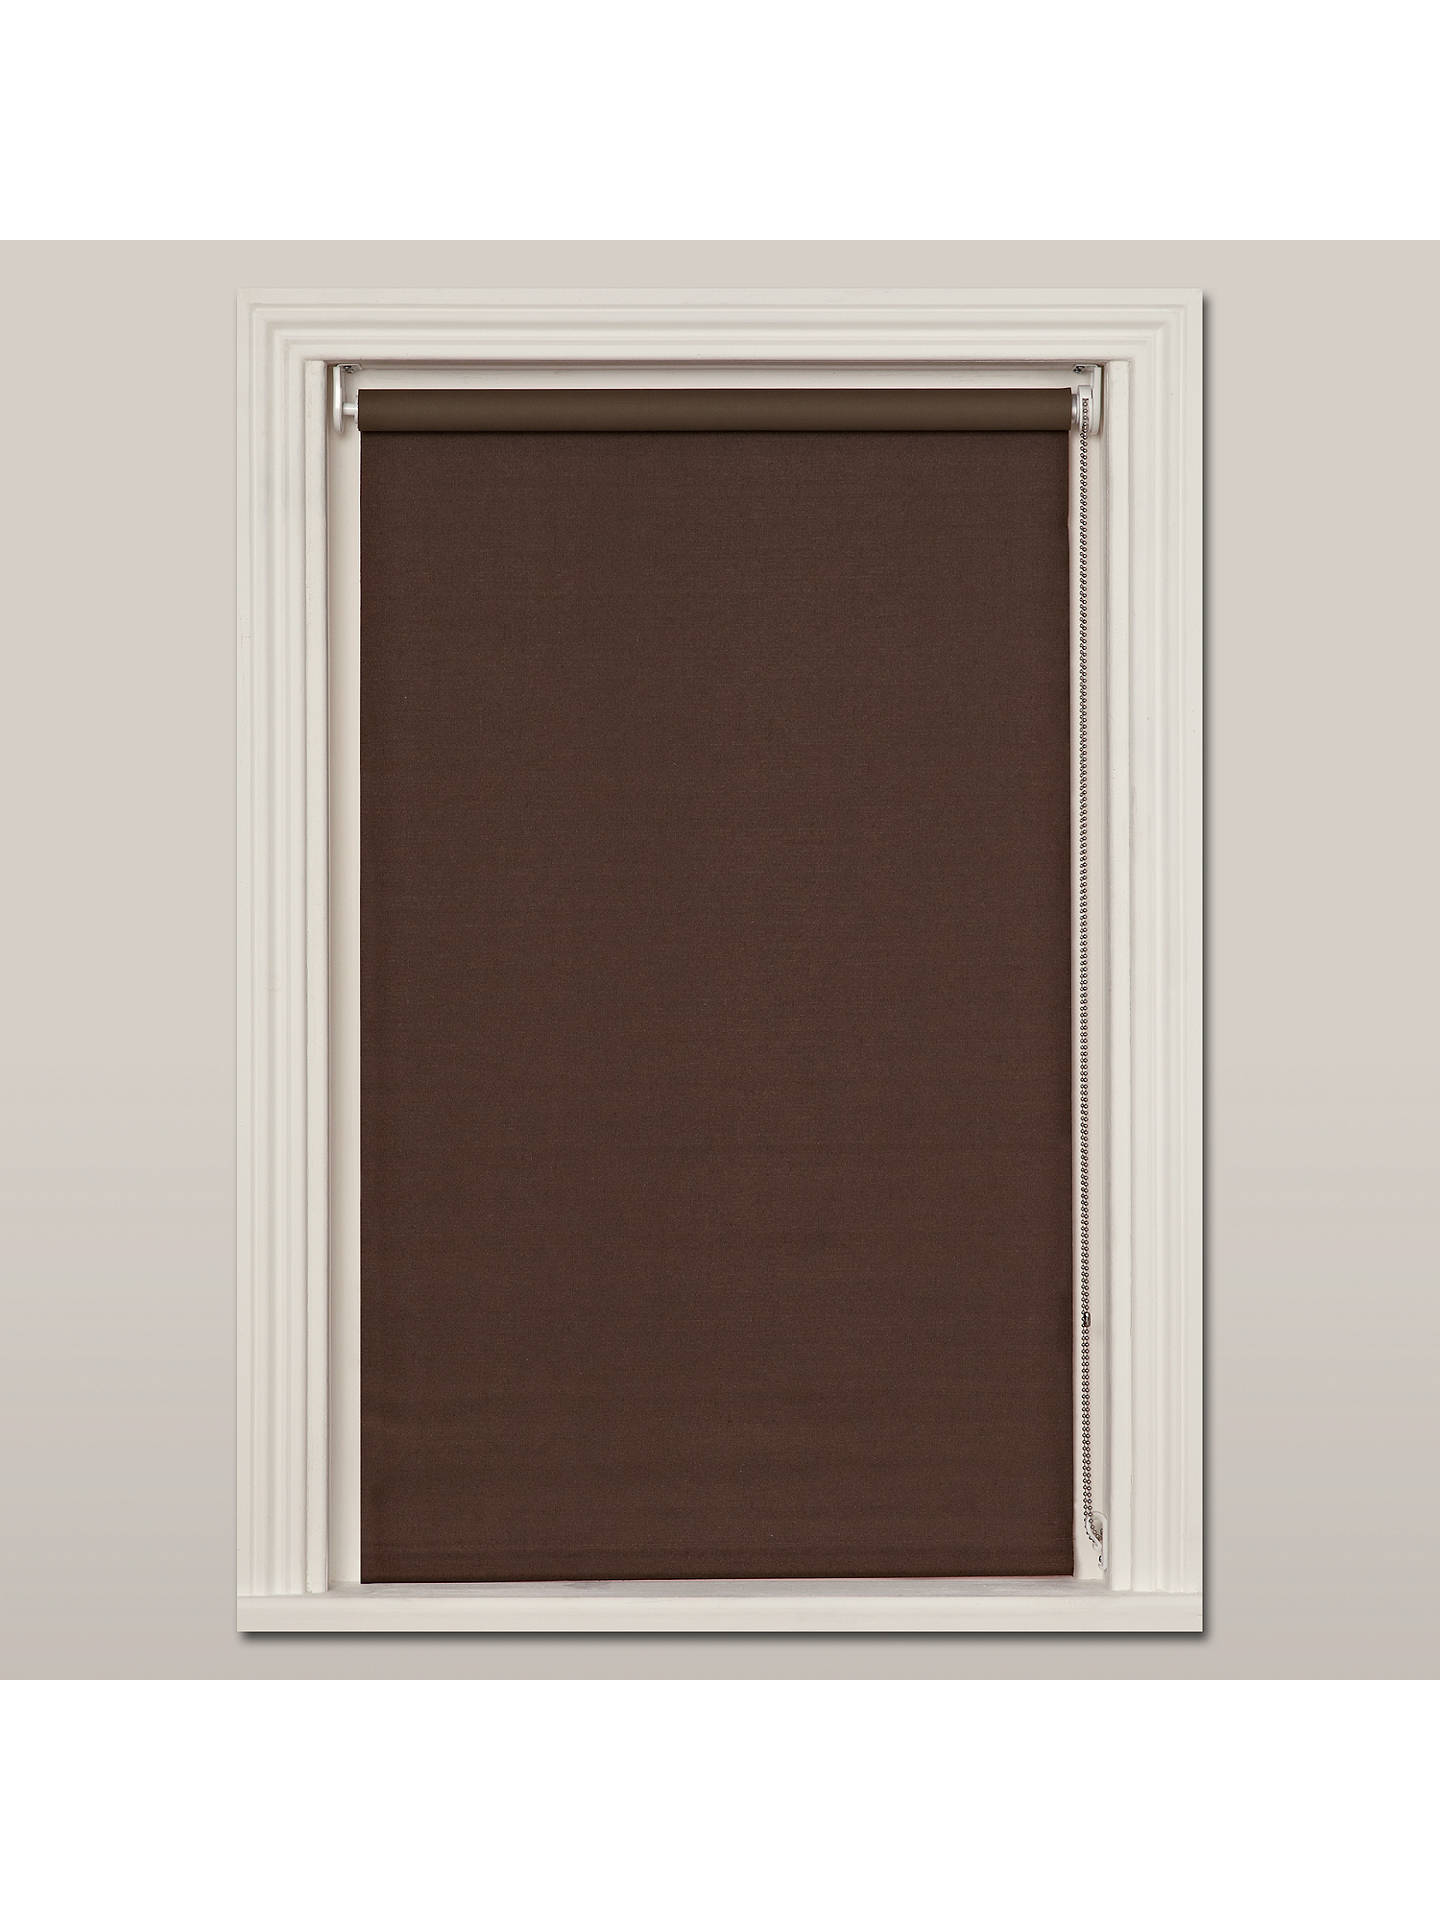 BuyJohn Lewis & Partners Hessian Blackout Roller Blind, Mocha, W61cm Online at johnlewis.com